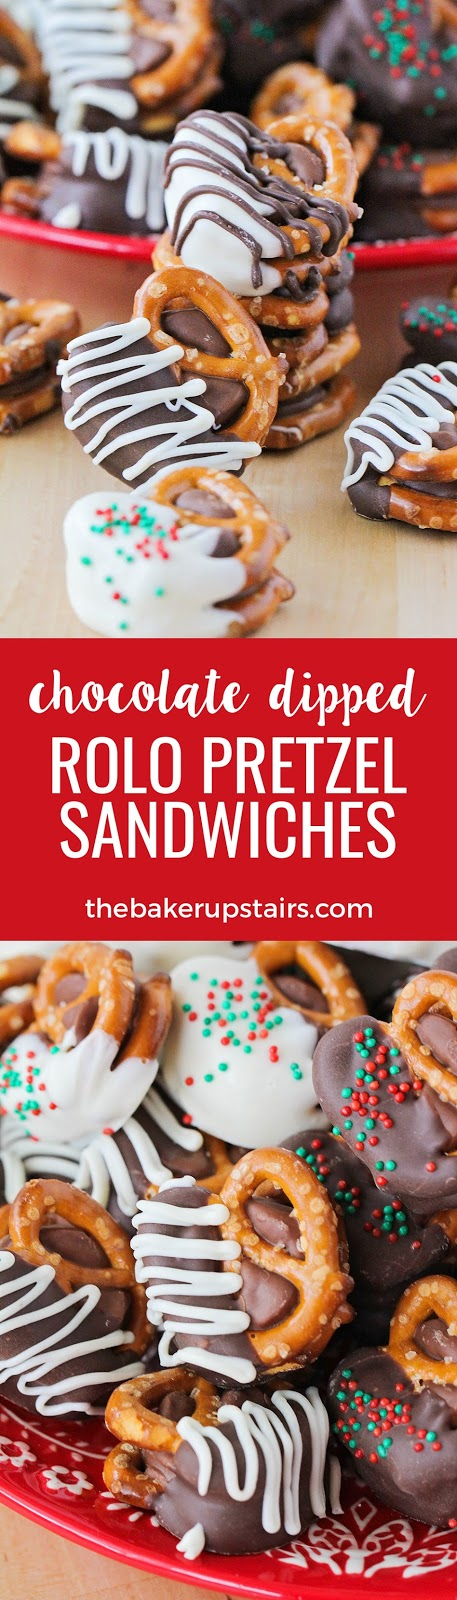 These Rolo pretzel sandwiches are so easy to make and so delicious too! Perfect for holiday snacking or gifting!